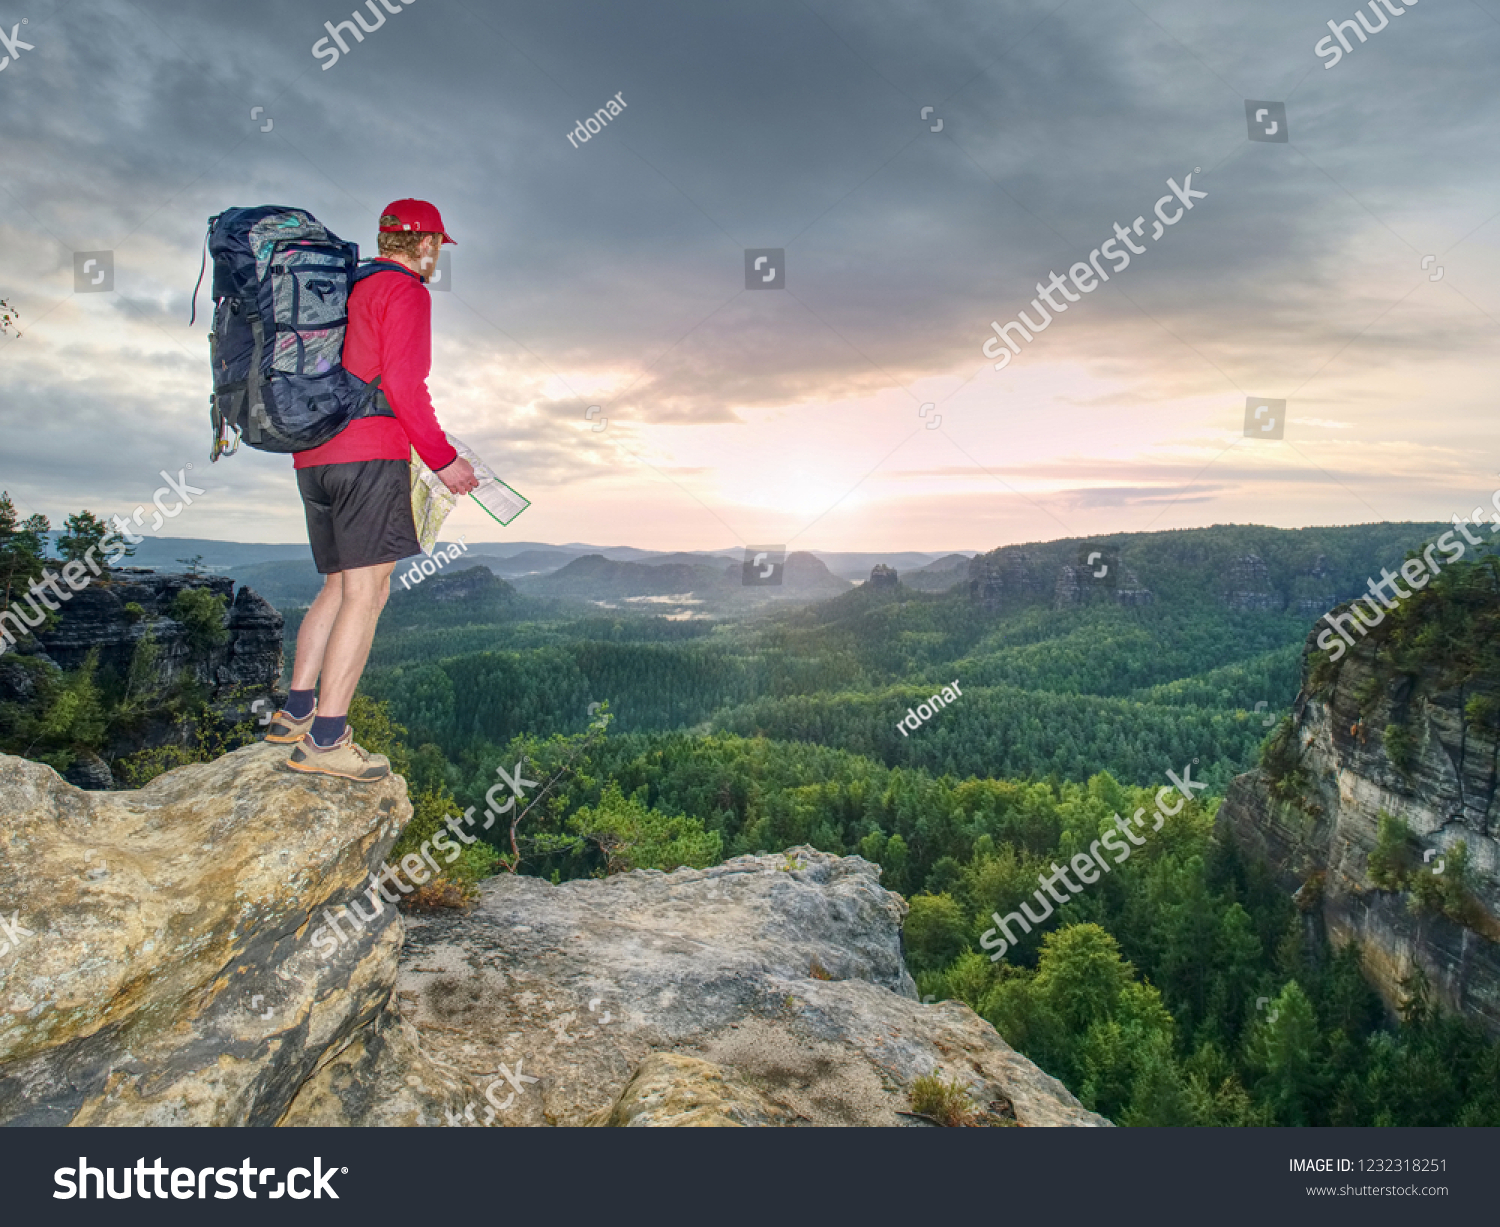 d5653d2bf780 Tall tourist with big backpack looking in paper map. Wild hilly nature  park. Hiker